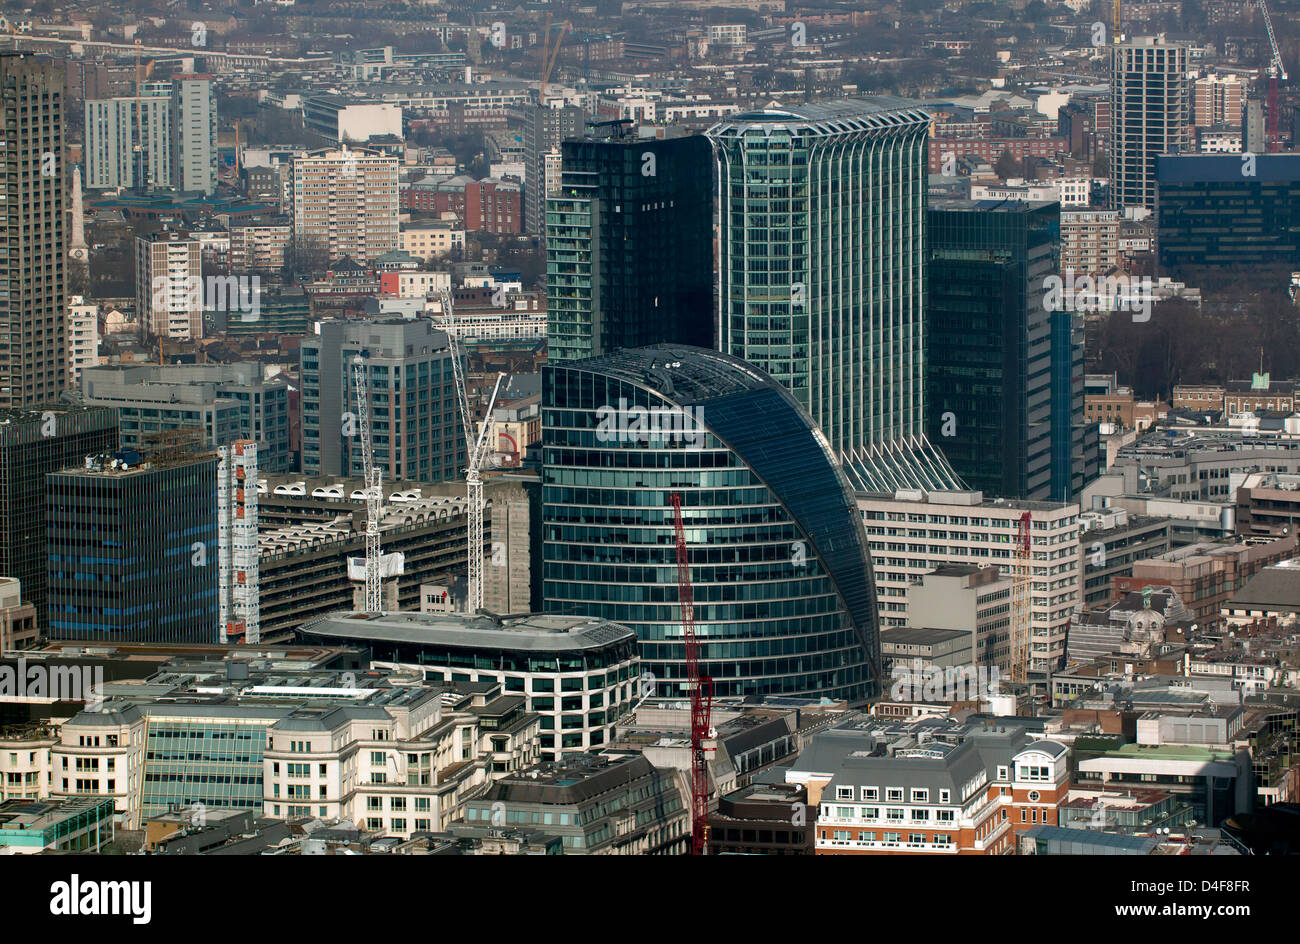 Aerial view of  Citypoint, Moor House and their surrounding area. - Stock Image